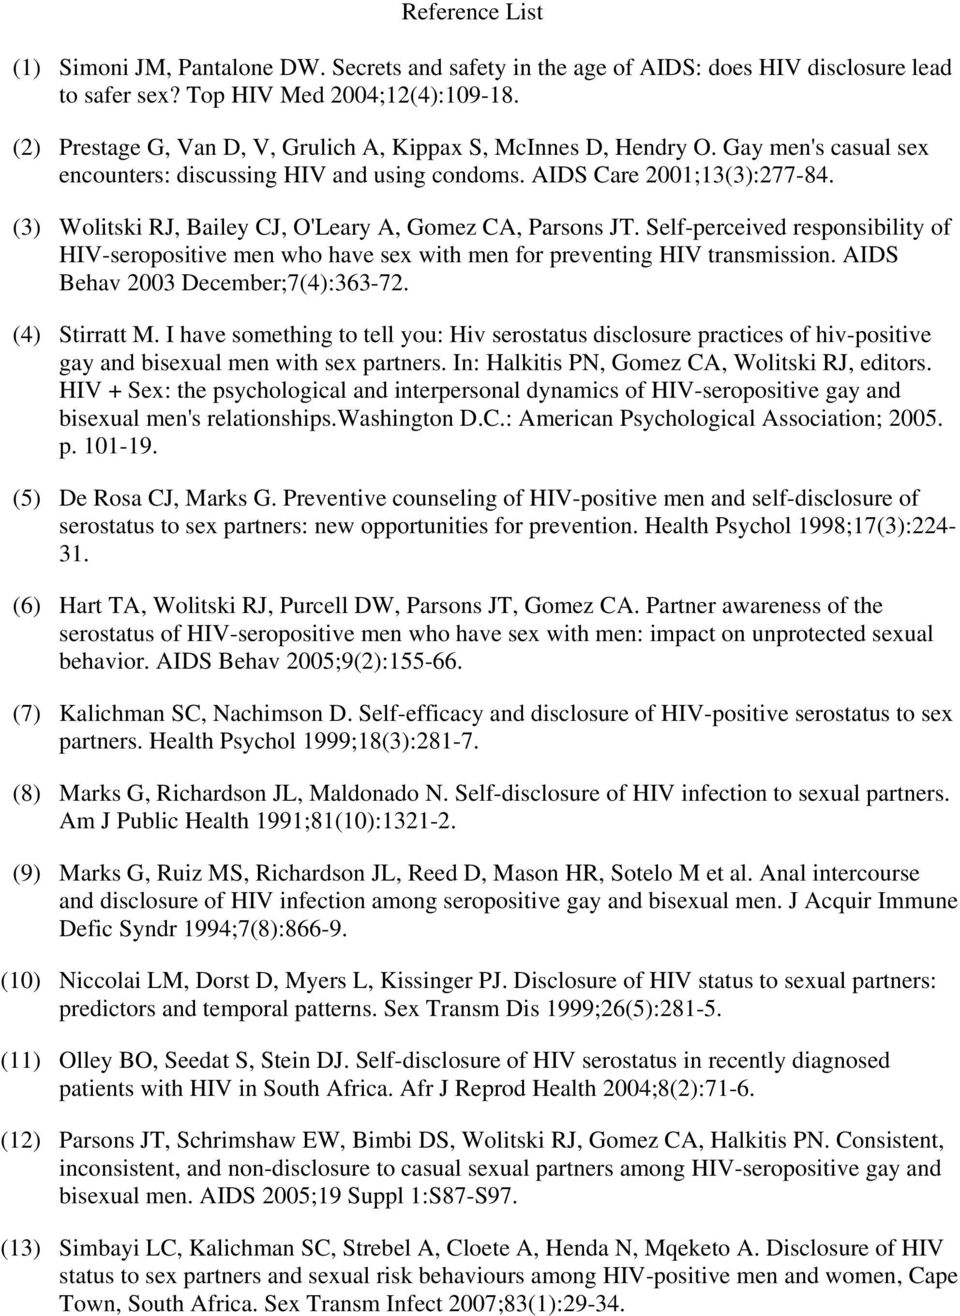 (3) Wolitski RJ, Bailey CJ, O'Leary A, Gomez CA, Parsons JT. Self-perceived responsibility of HIV-seropositive men who have sex with men for preventing HIV transmission.